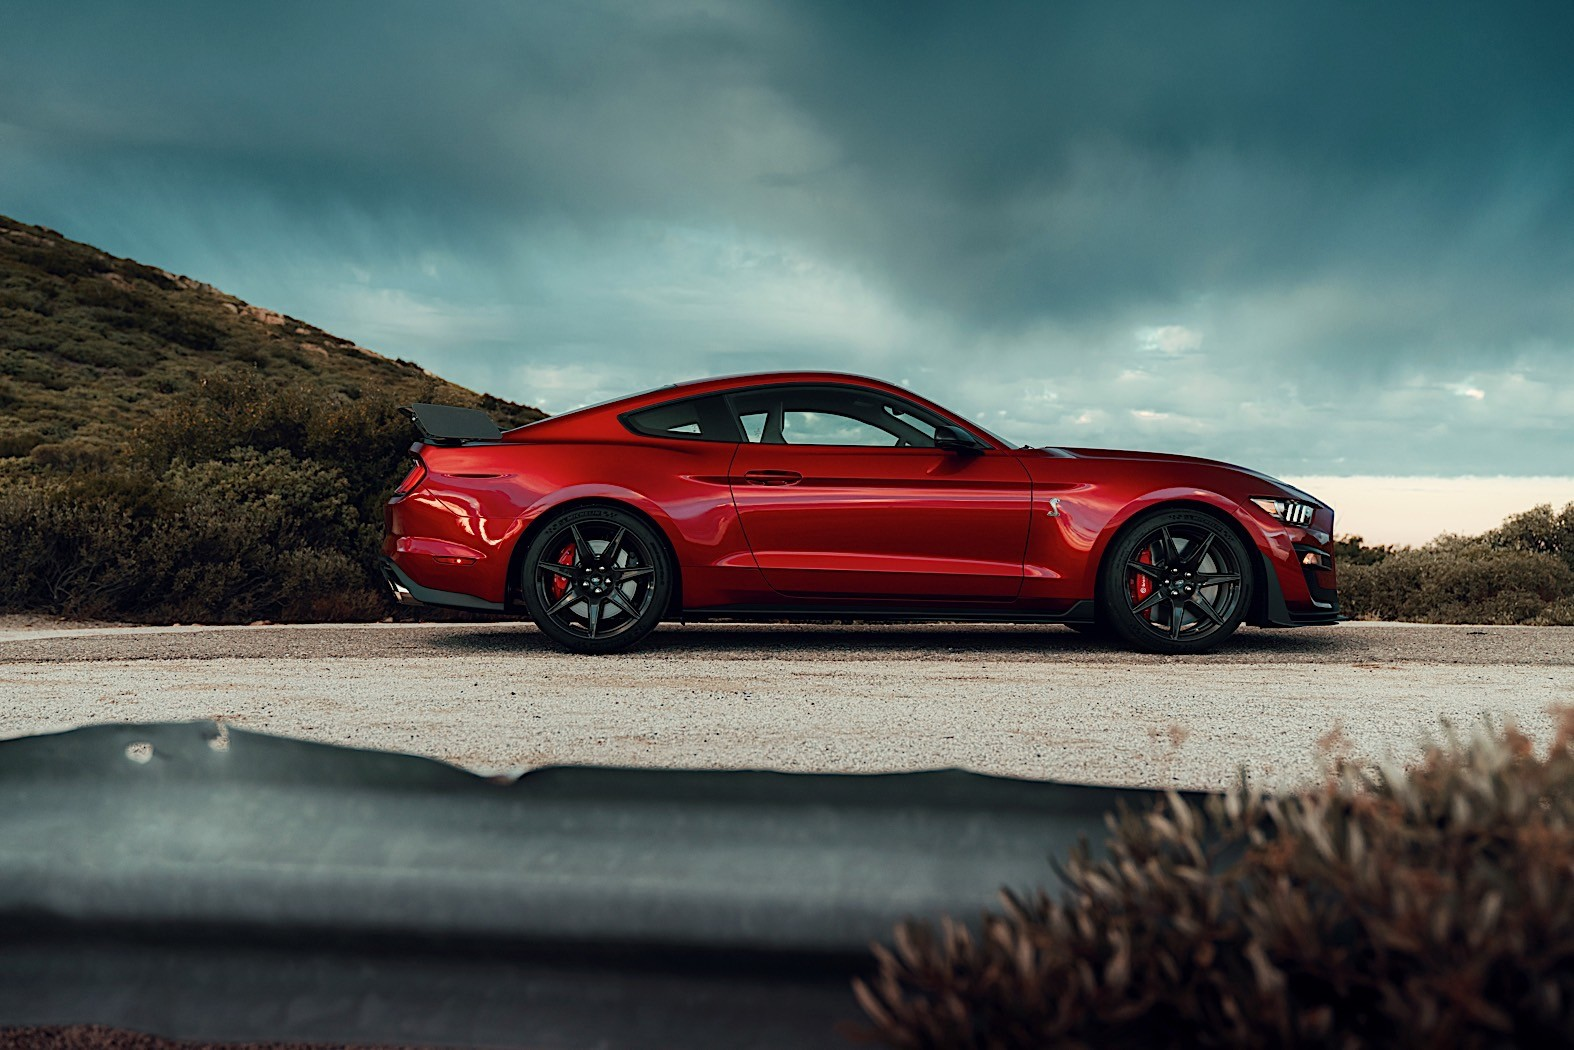 2020 Mustang Shelby Gt500 Hear The Mighty Roar Of The